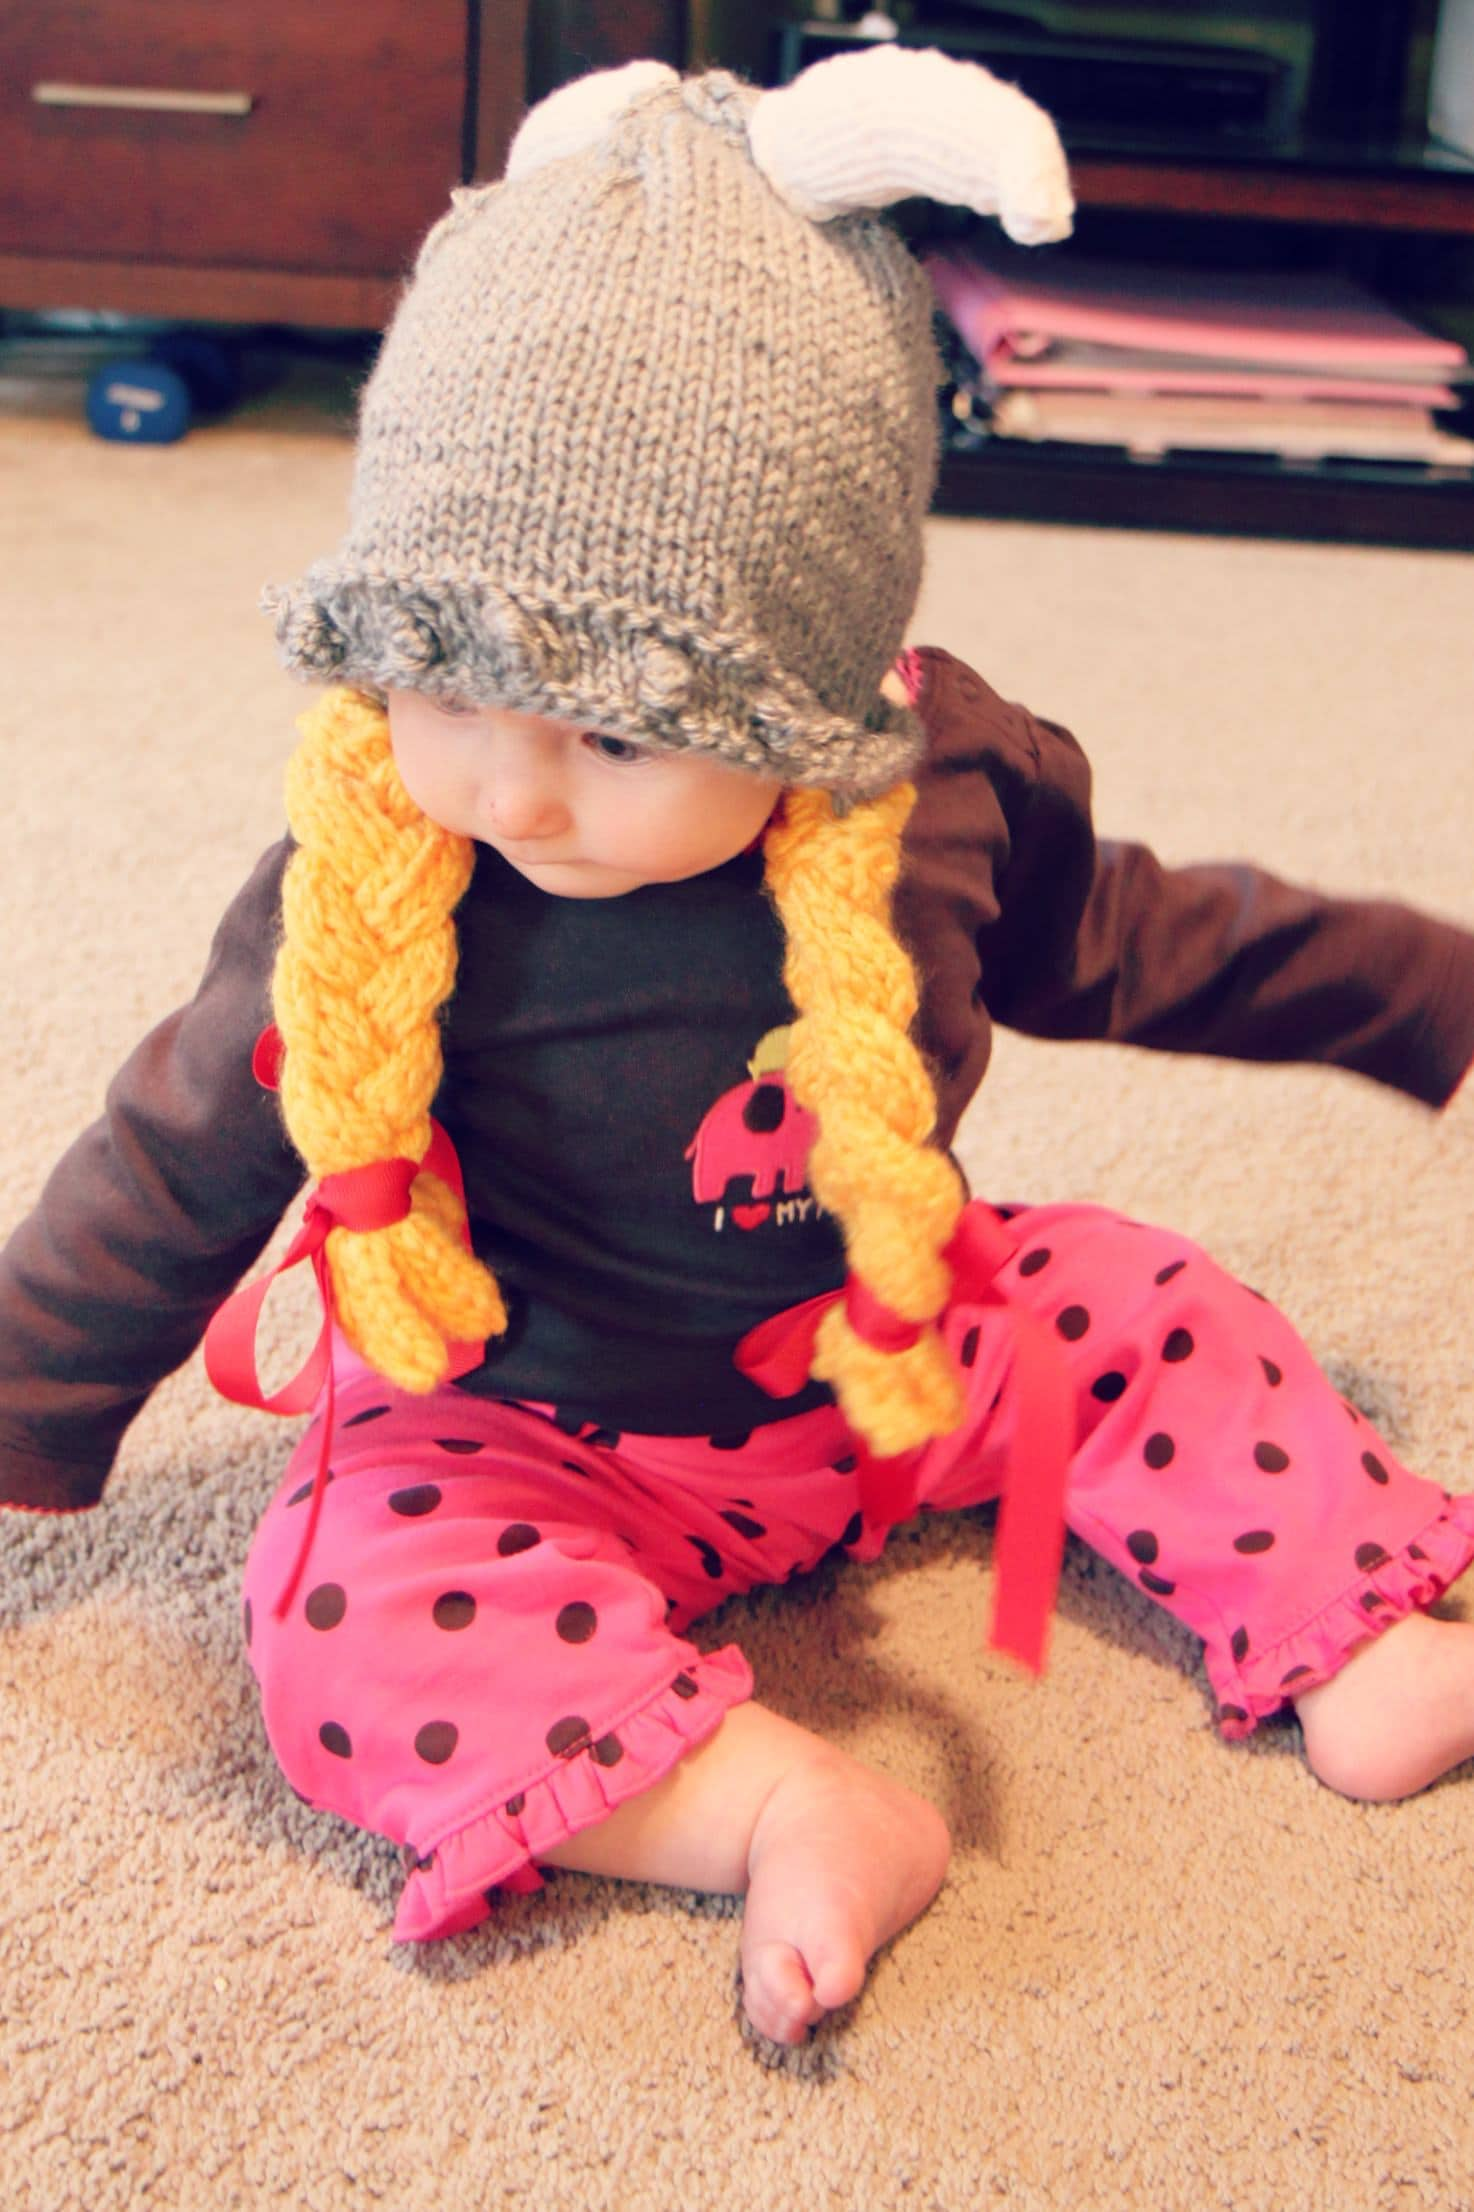 Baby Knitted Viking Hat for Halloween - MomAdvice